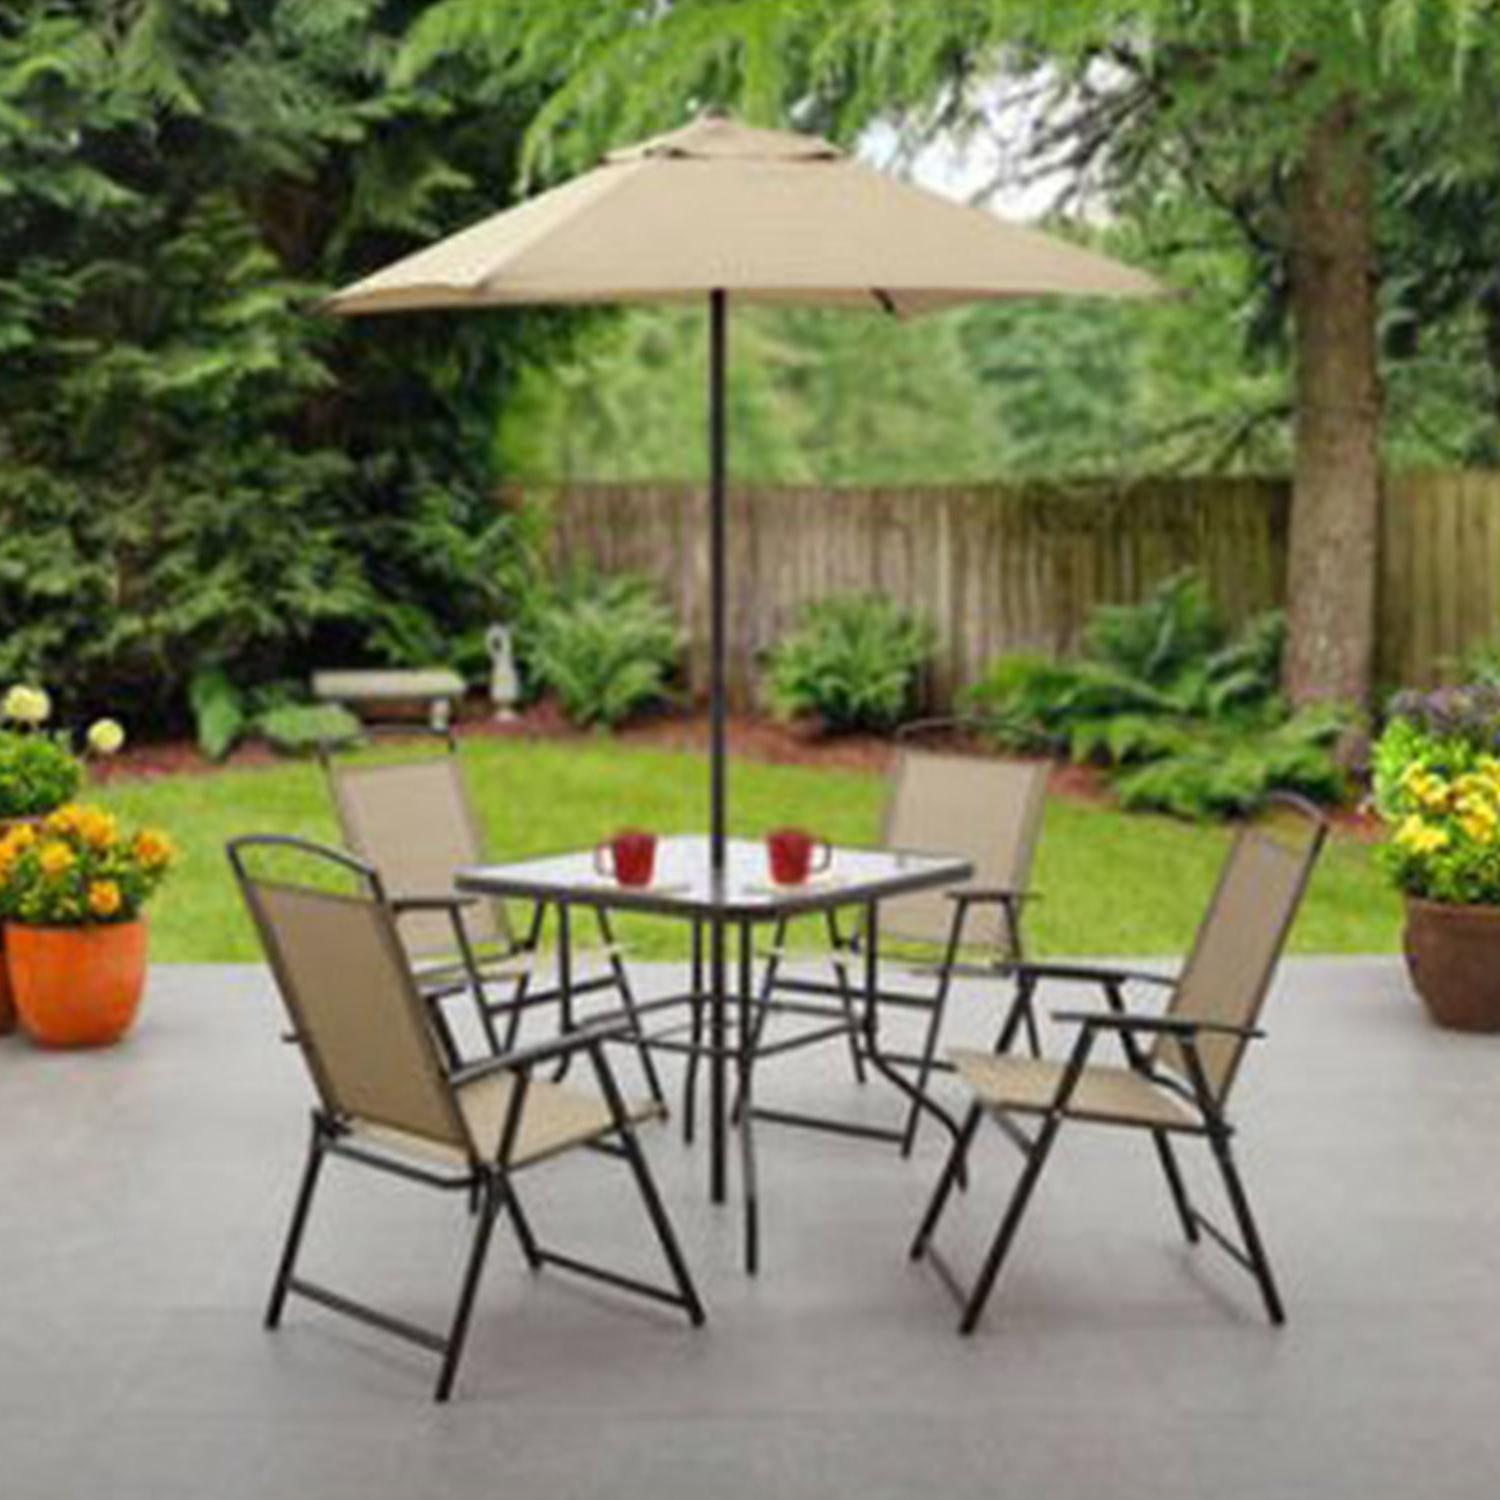 6 Piece Patio Dining Set Folding Table Chairs Umbrella Outdo